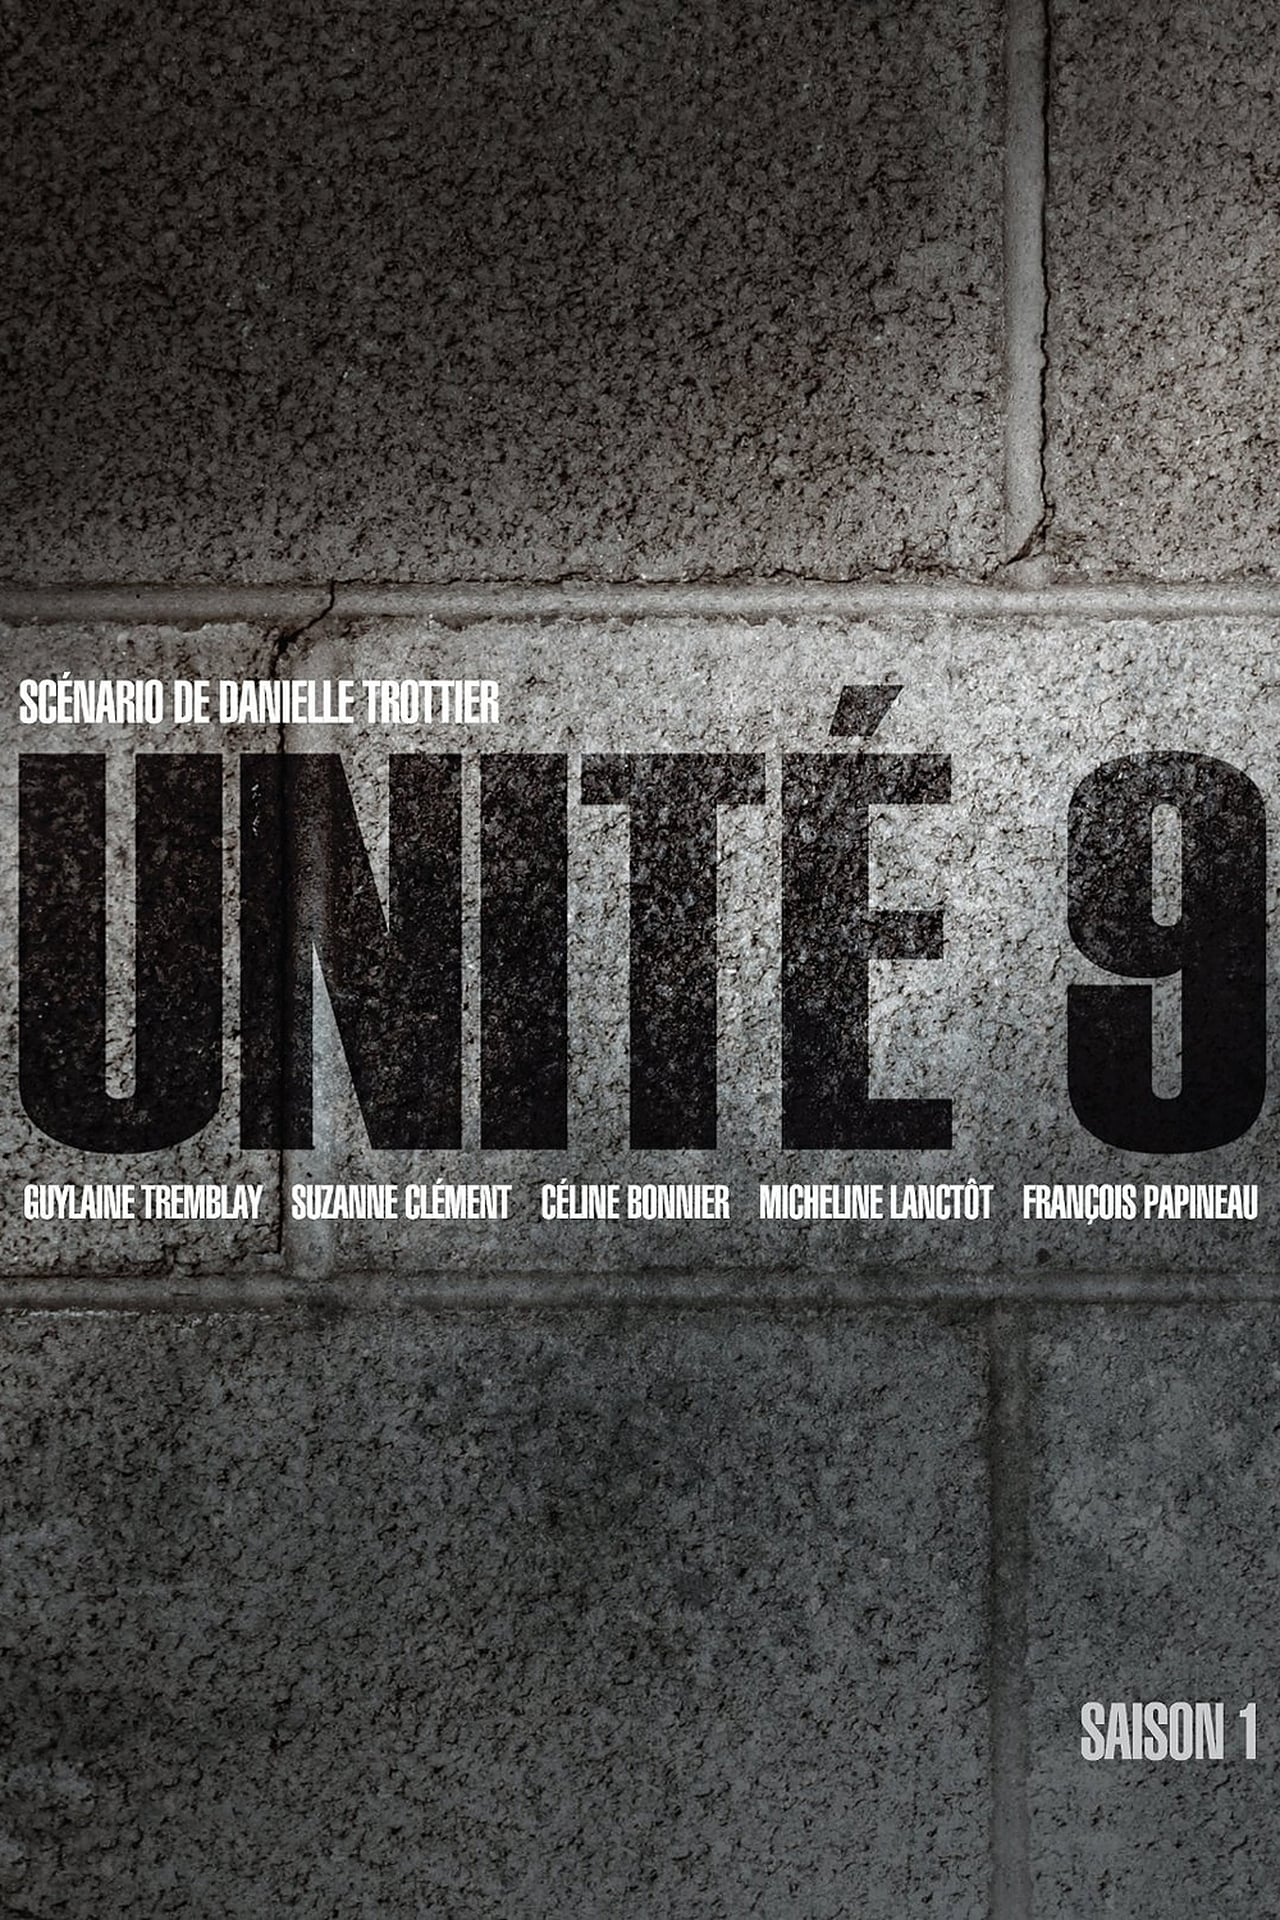 Putlocker Unite 9 Season 1 (2012)